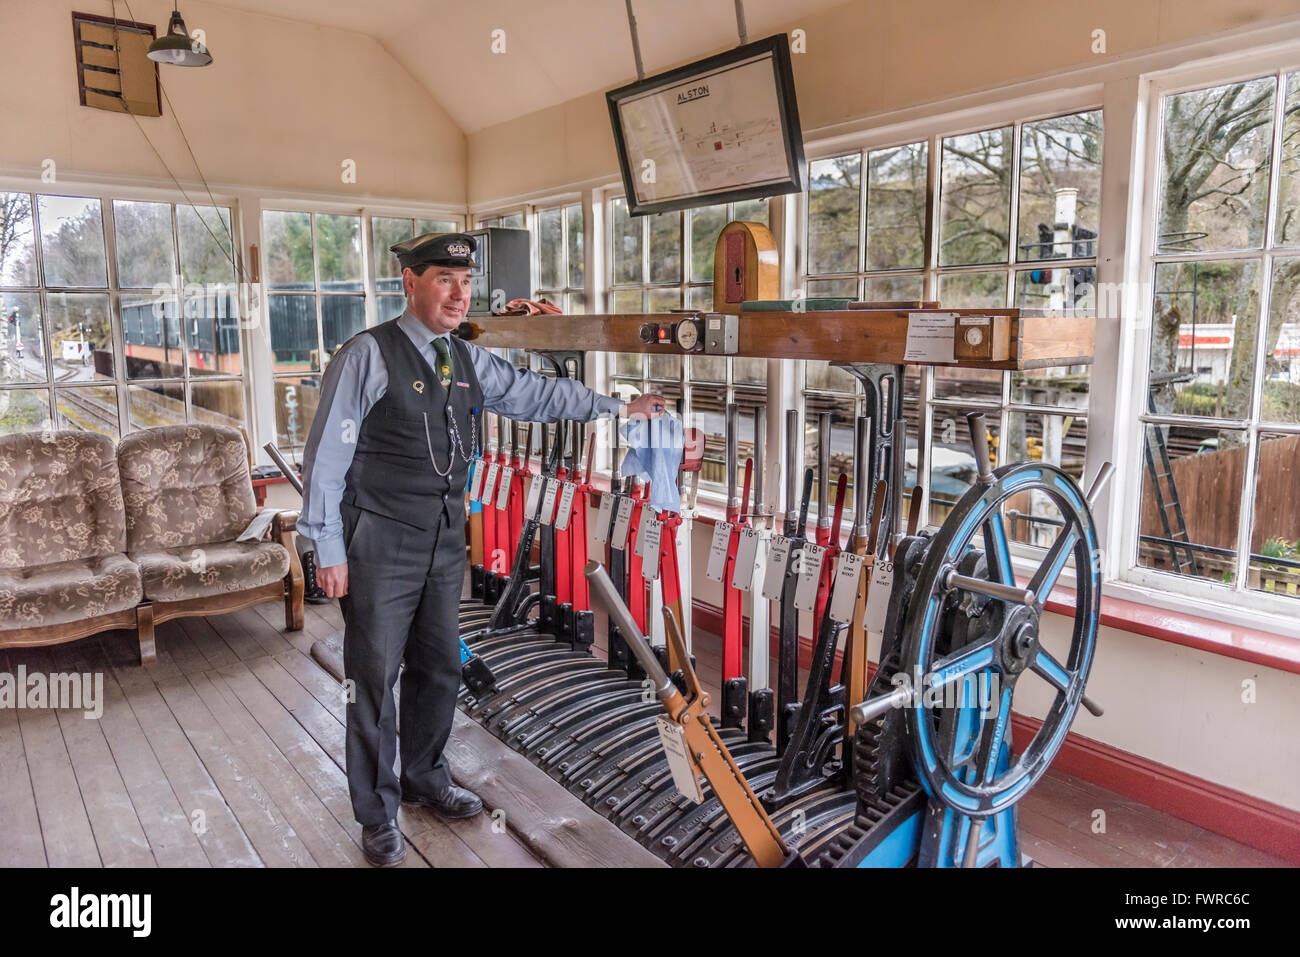 South Tynedale Railway running between Alston in Cumbria and Kirkhaugh in Northumberland. Signalman in signalbox. - Stock Image